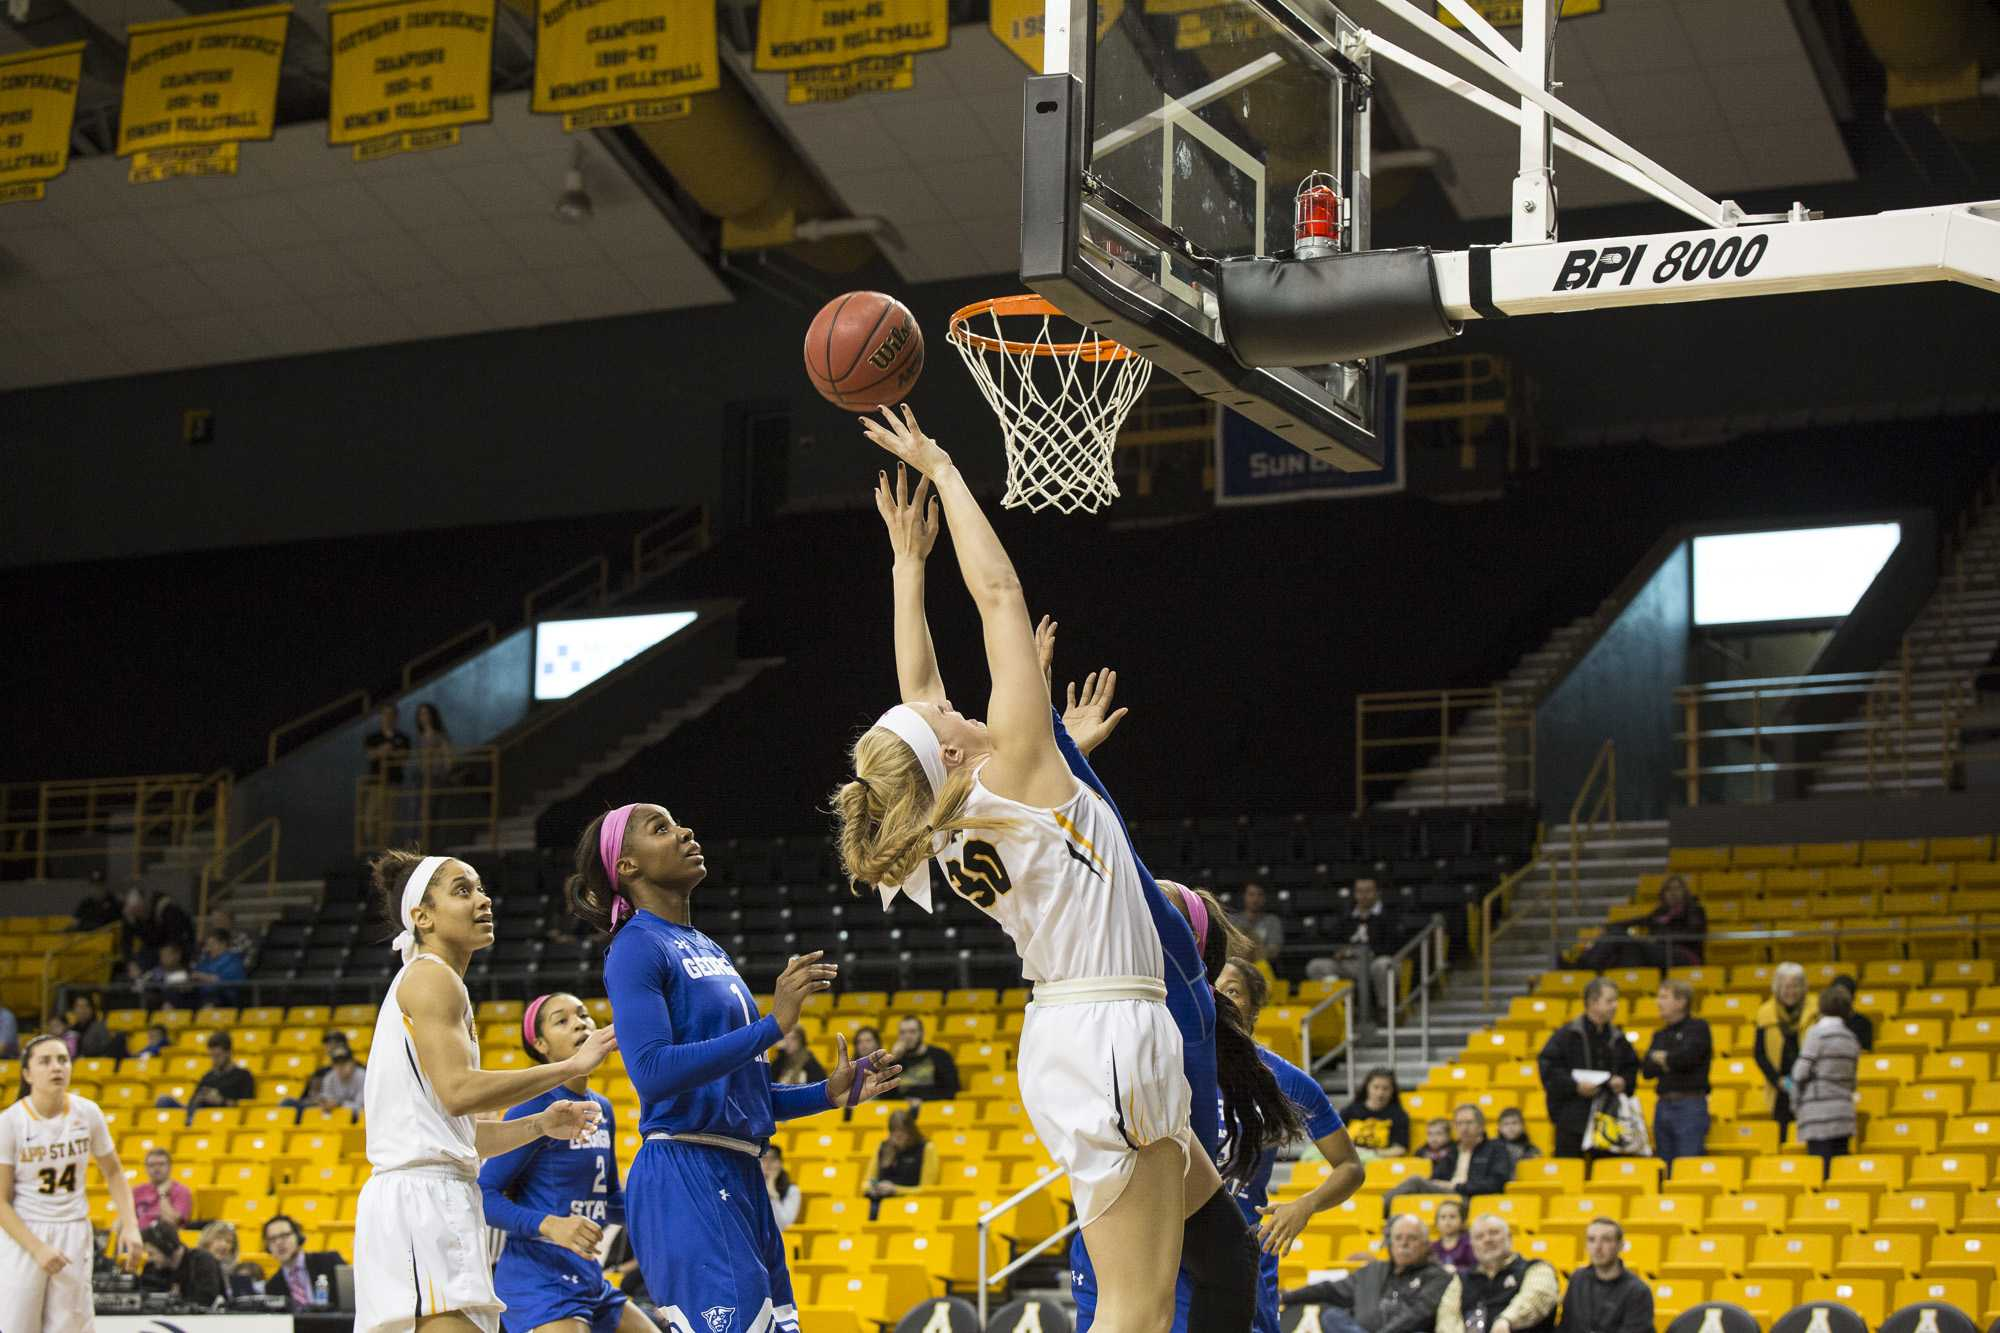 App State's Ashley Bassett-Smith drives through Georgia State defenders to score for the Mountaineers.